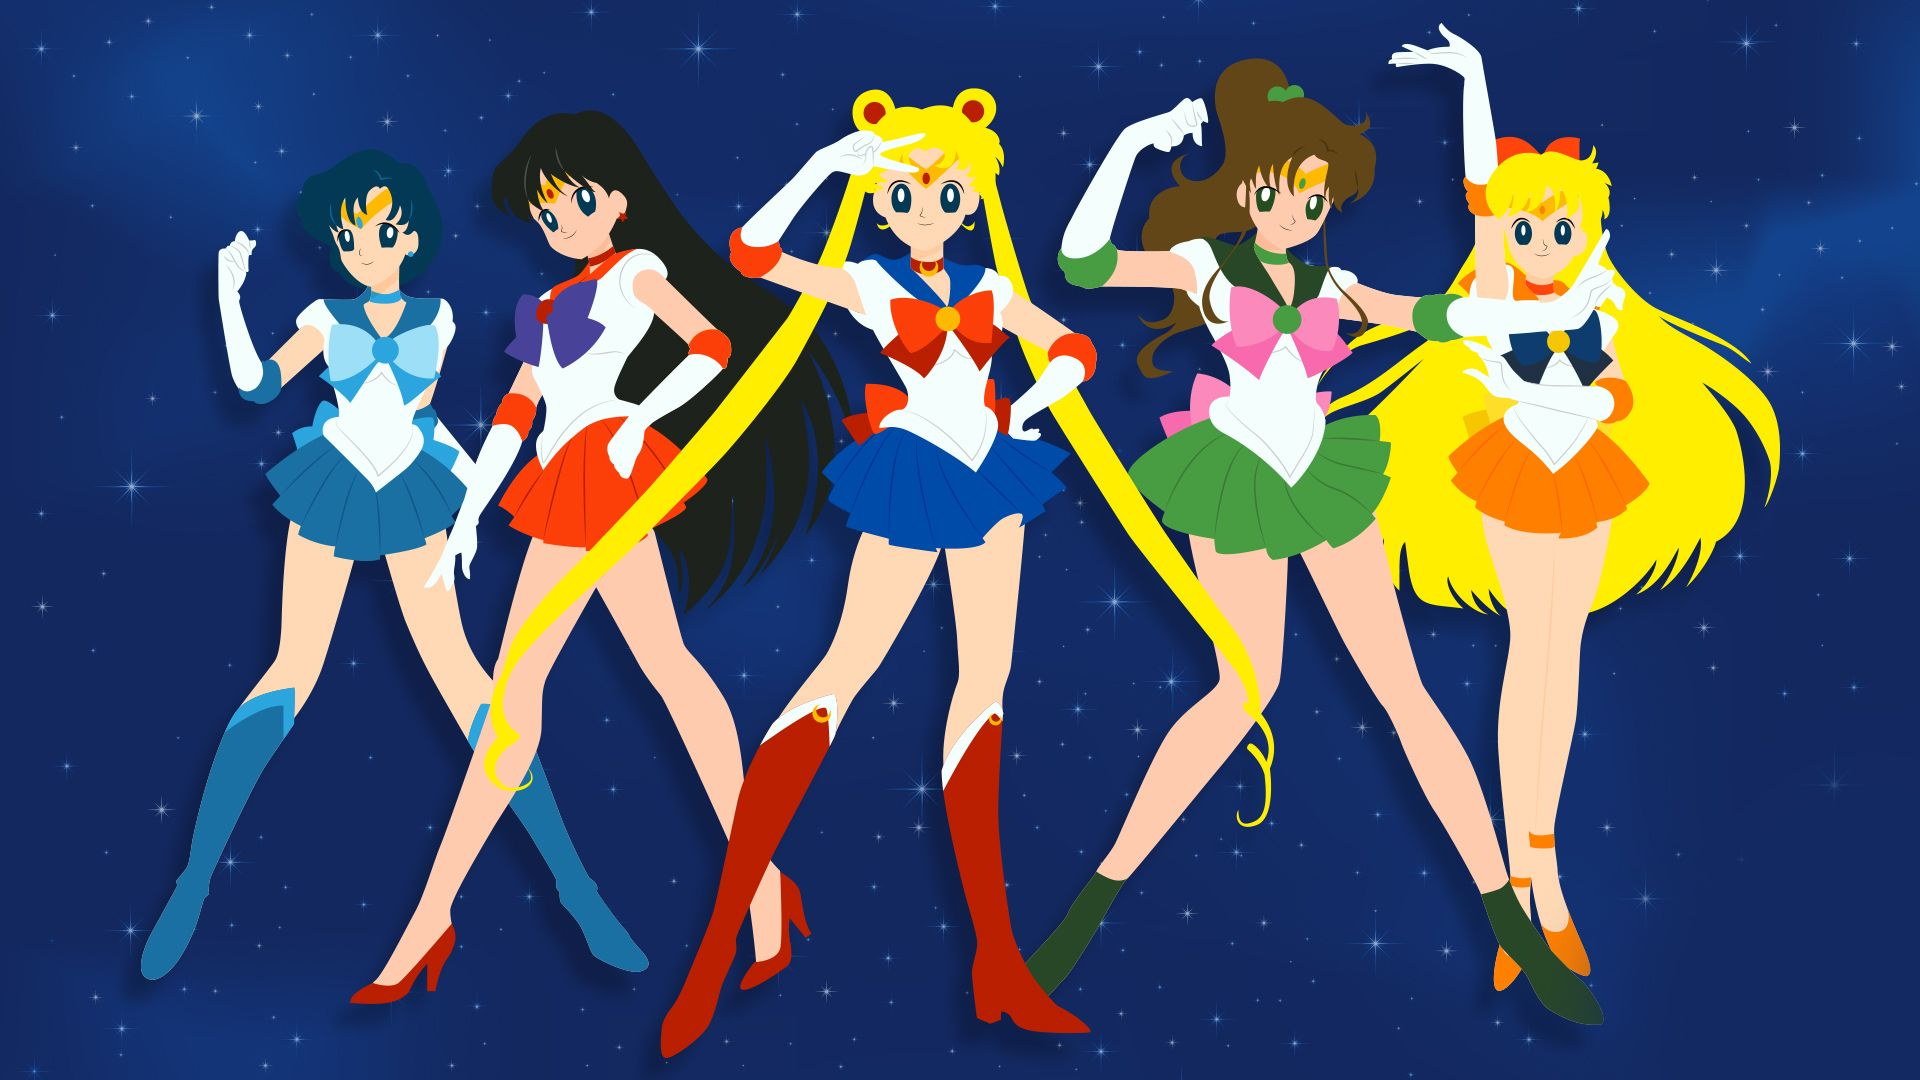 Sailor Moon Wallpapers And Photos In Fhdq For Download 1920 1080 Sailor Moon Wallpaper 39 Wal Sailor Moon Wallpaper Sailor Moon Sailor Moon Crystal Wallpapers High quality sailor moon hd wallpaper